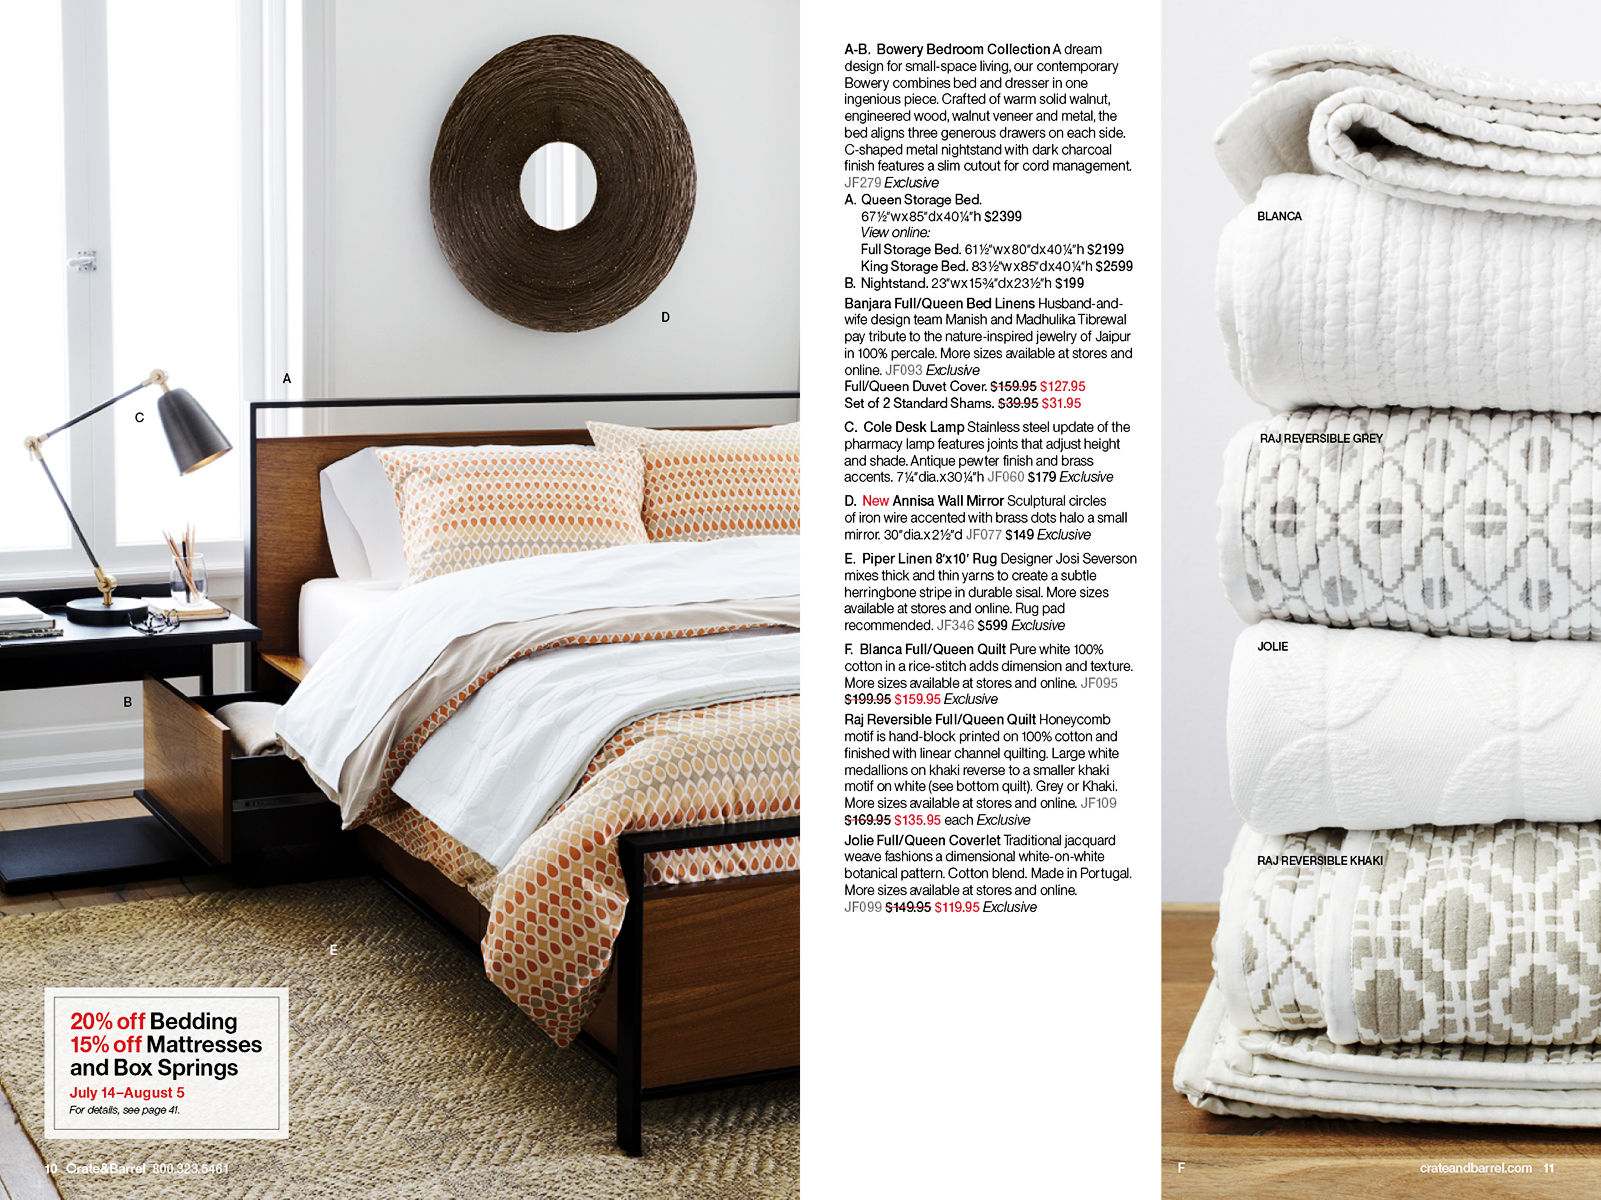 Crate & Barrel/ First Look Fall 2015